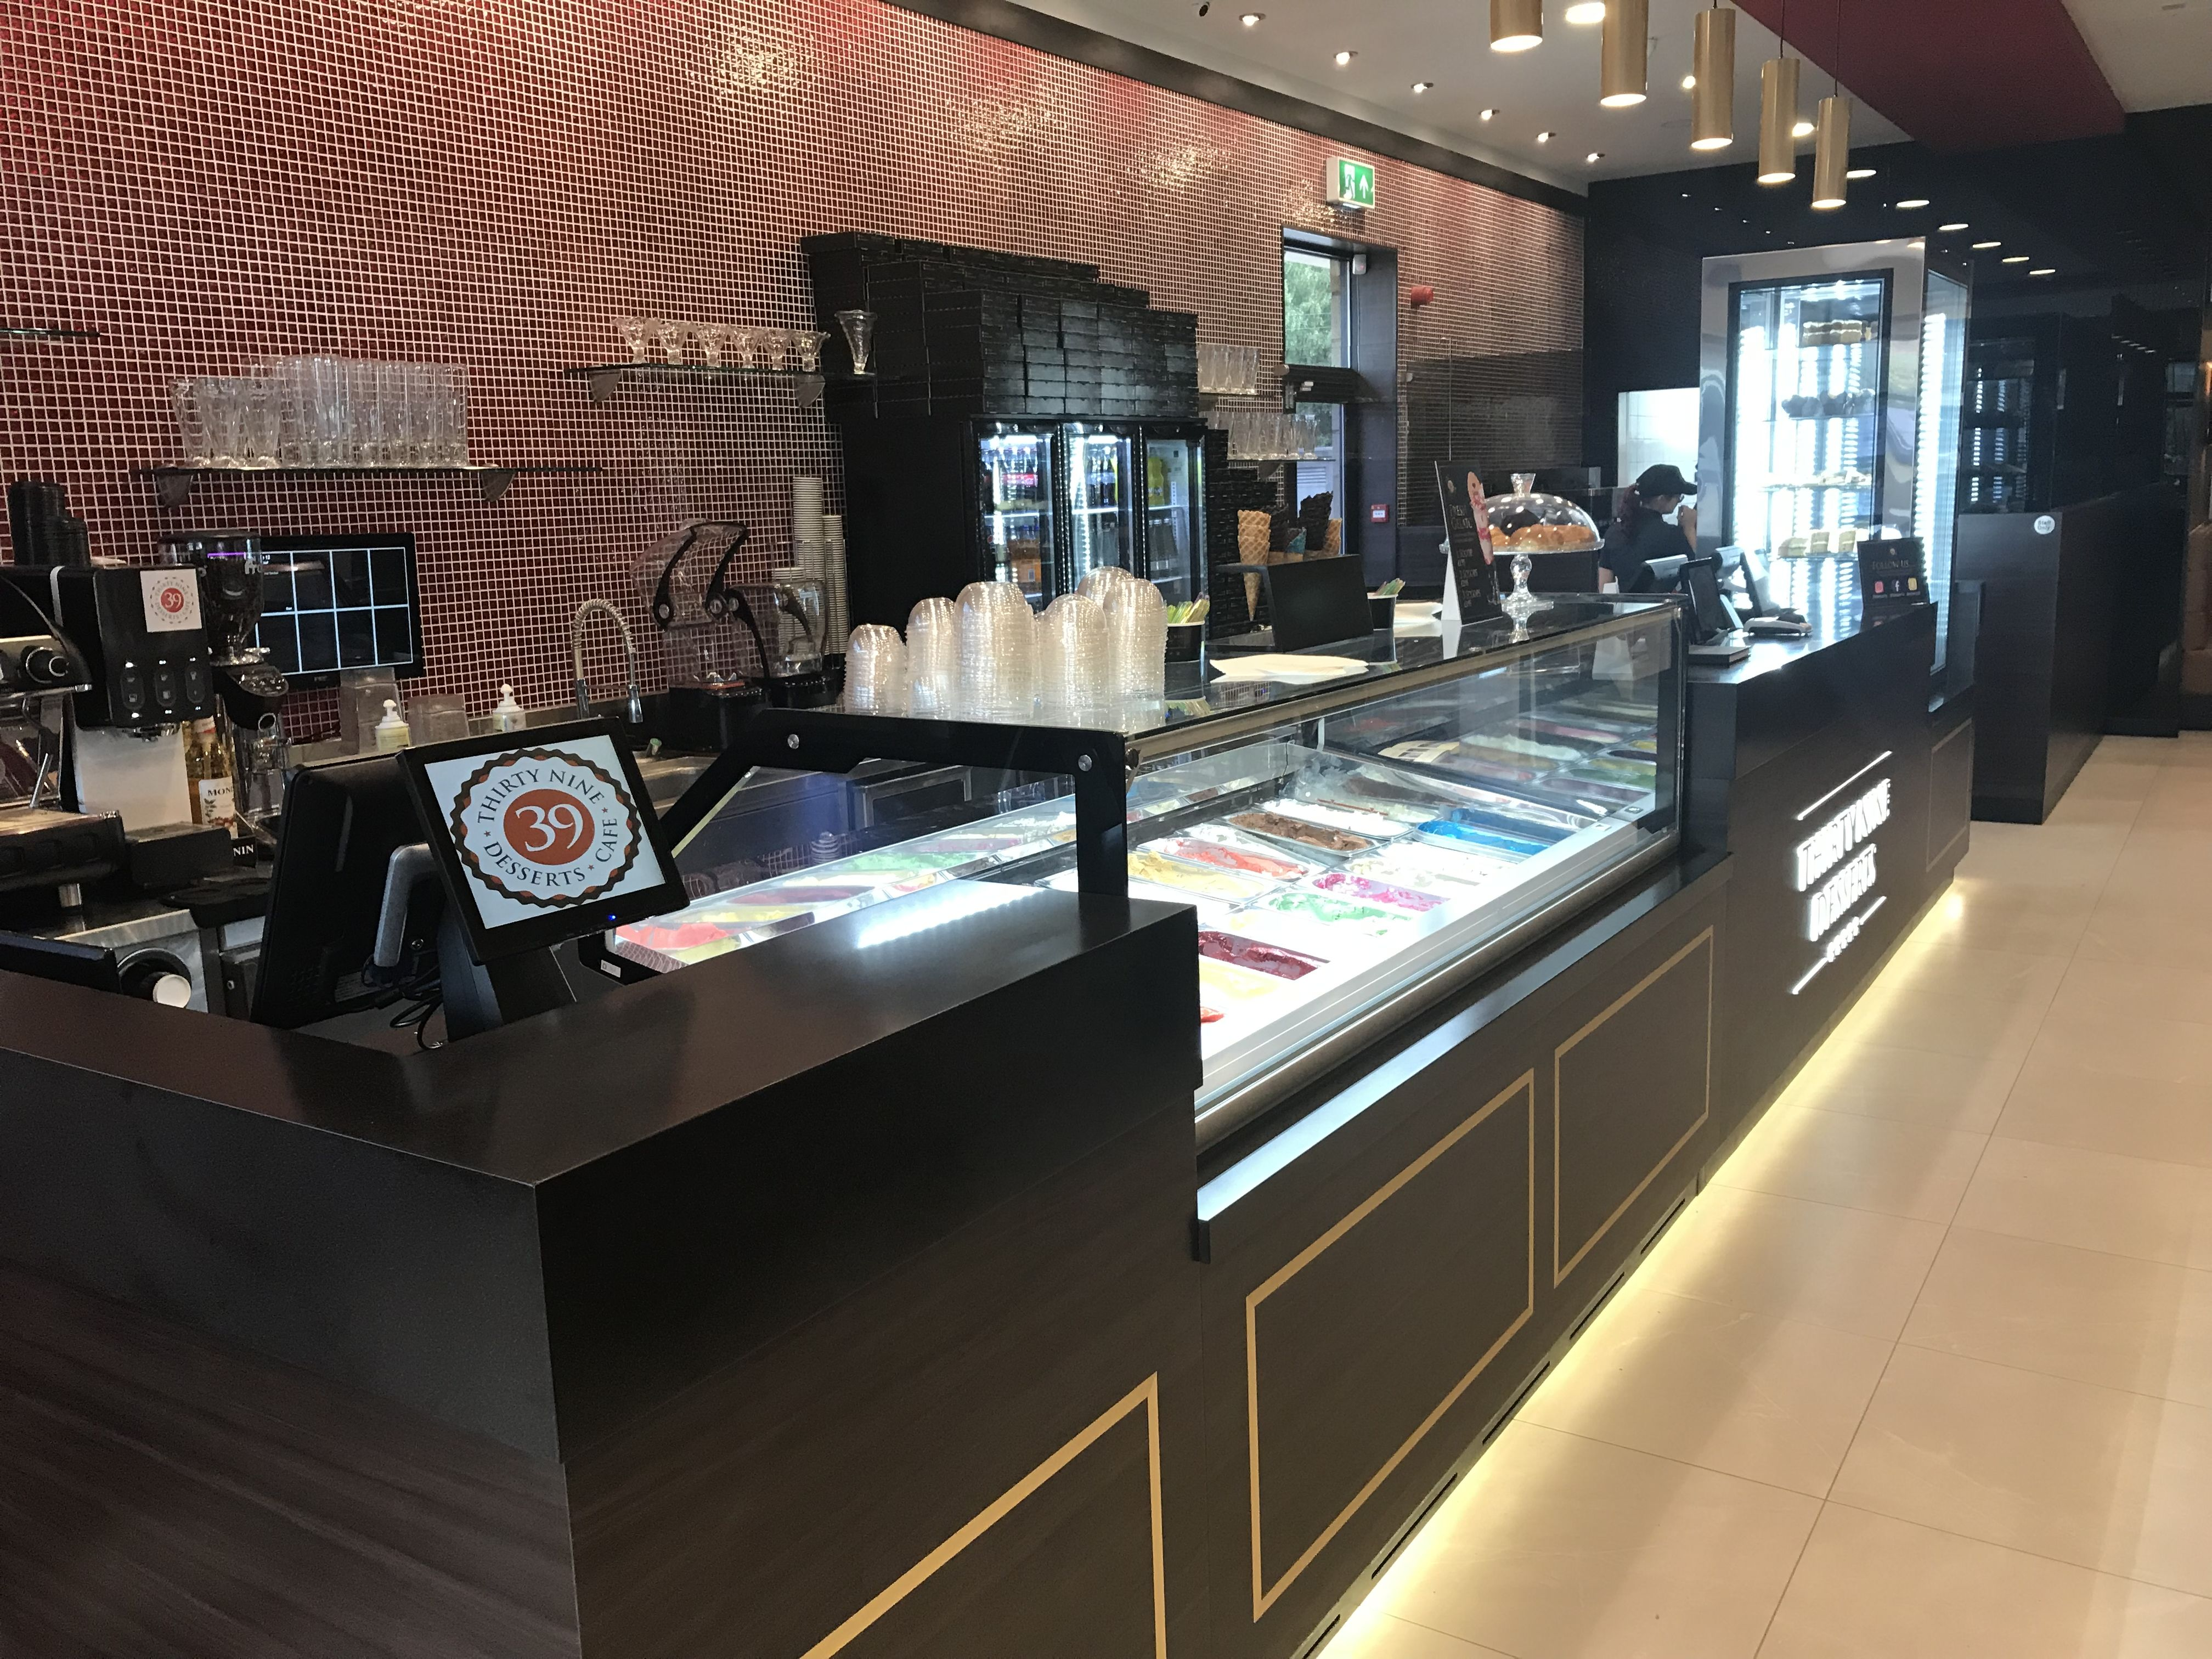 New Ice Cream Parlour 39 Desserts In Sheffield Completely Equipped By Sweetheat With Both Front Back Of House Catering Equipment Refrigeration Products Te